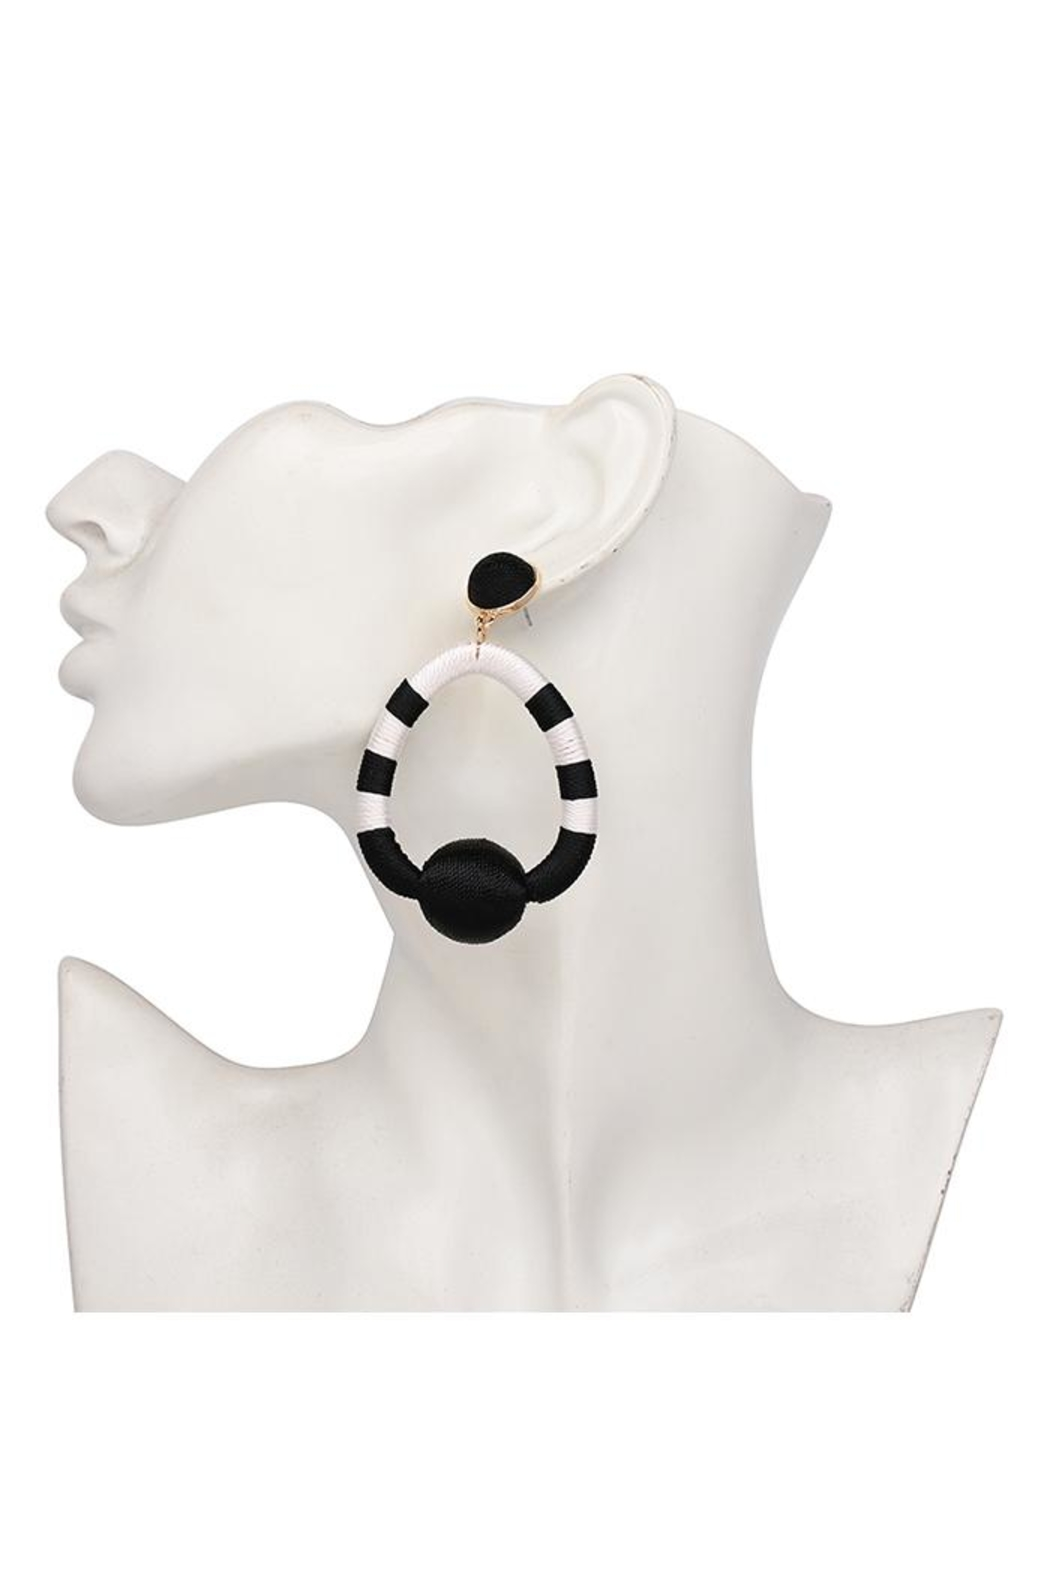 Madison Avenue Accessories Charlie Black Earring - Front Full Image